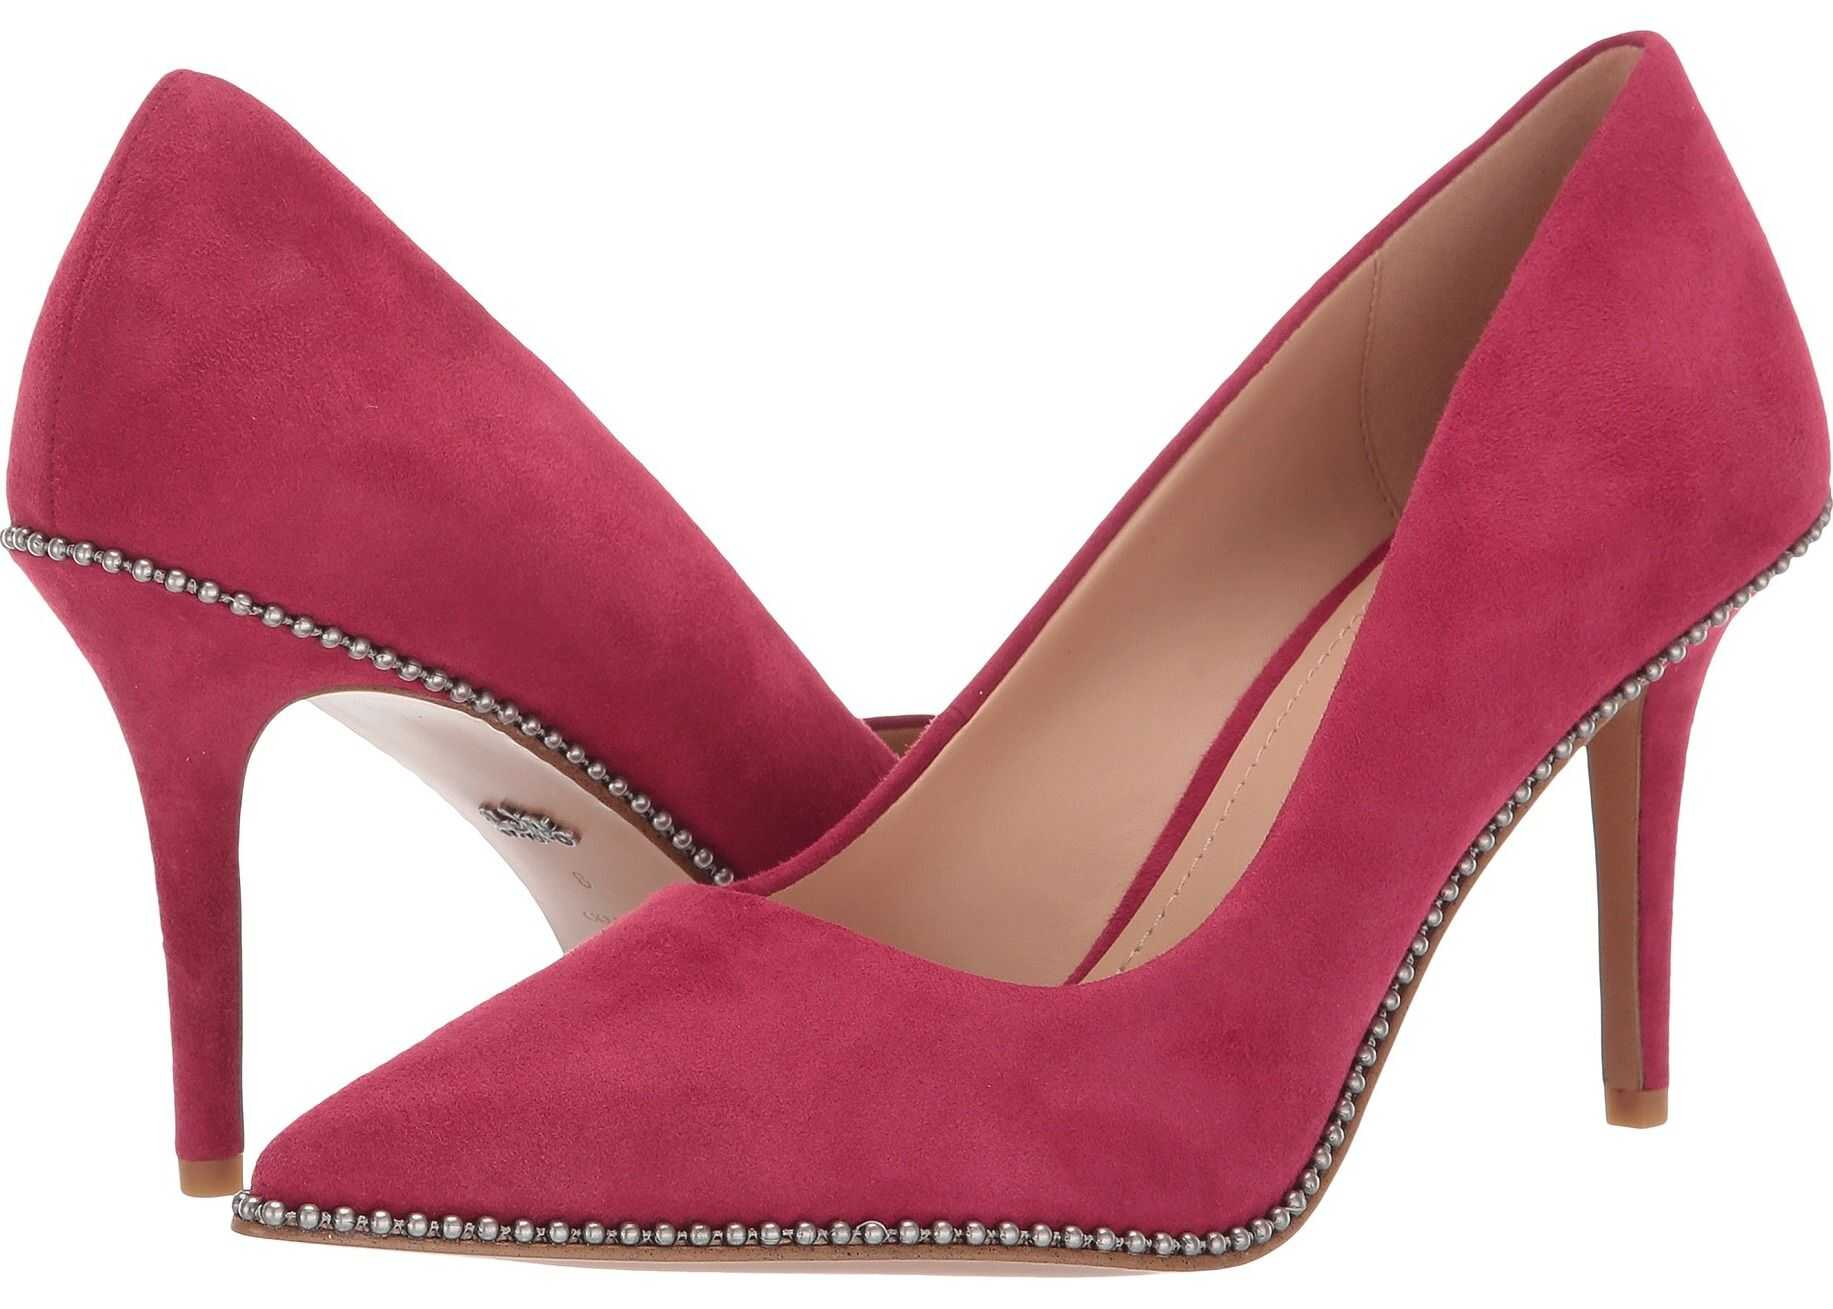 COACH 85 mm Waverly Pump with Beadchain Bright Cherry Suede